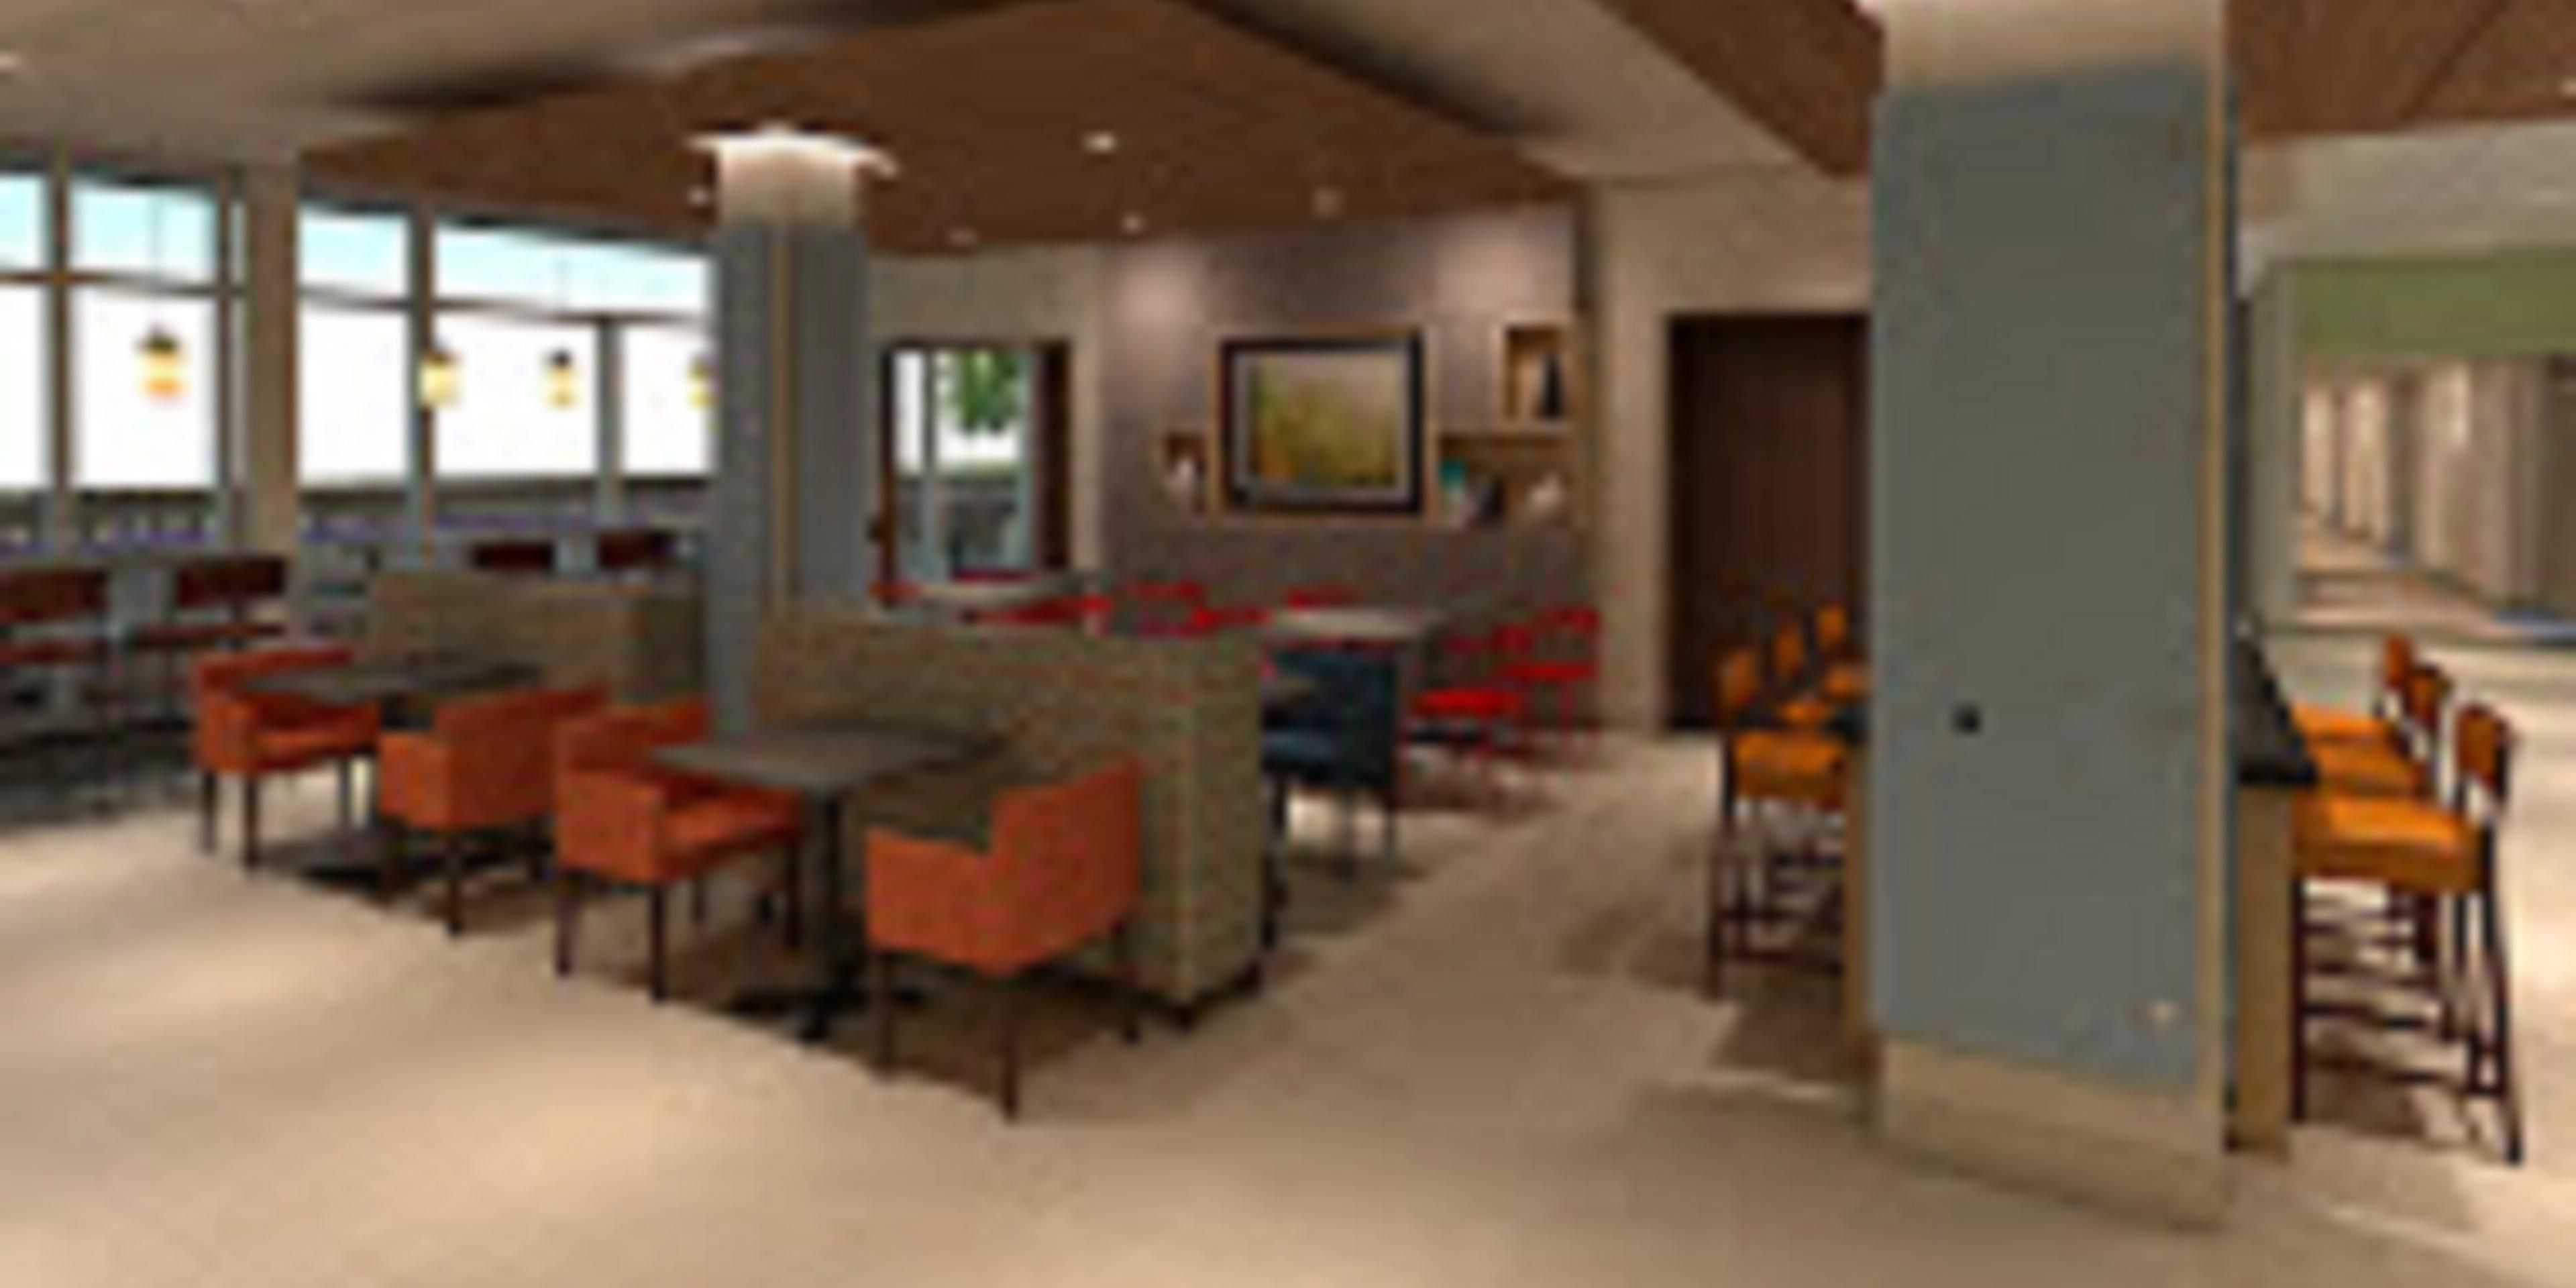 Holiday Inn Express  Suites Indianapolis NE  Noblesville Hotel